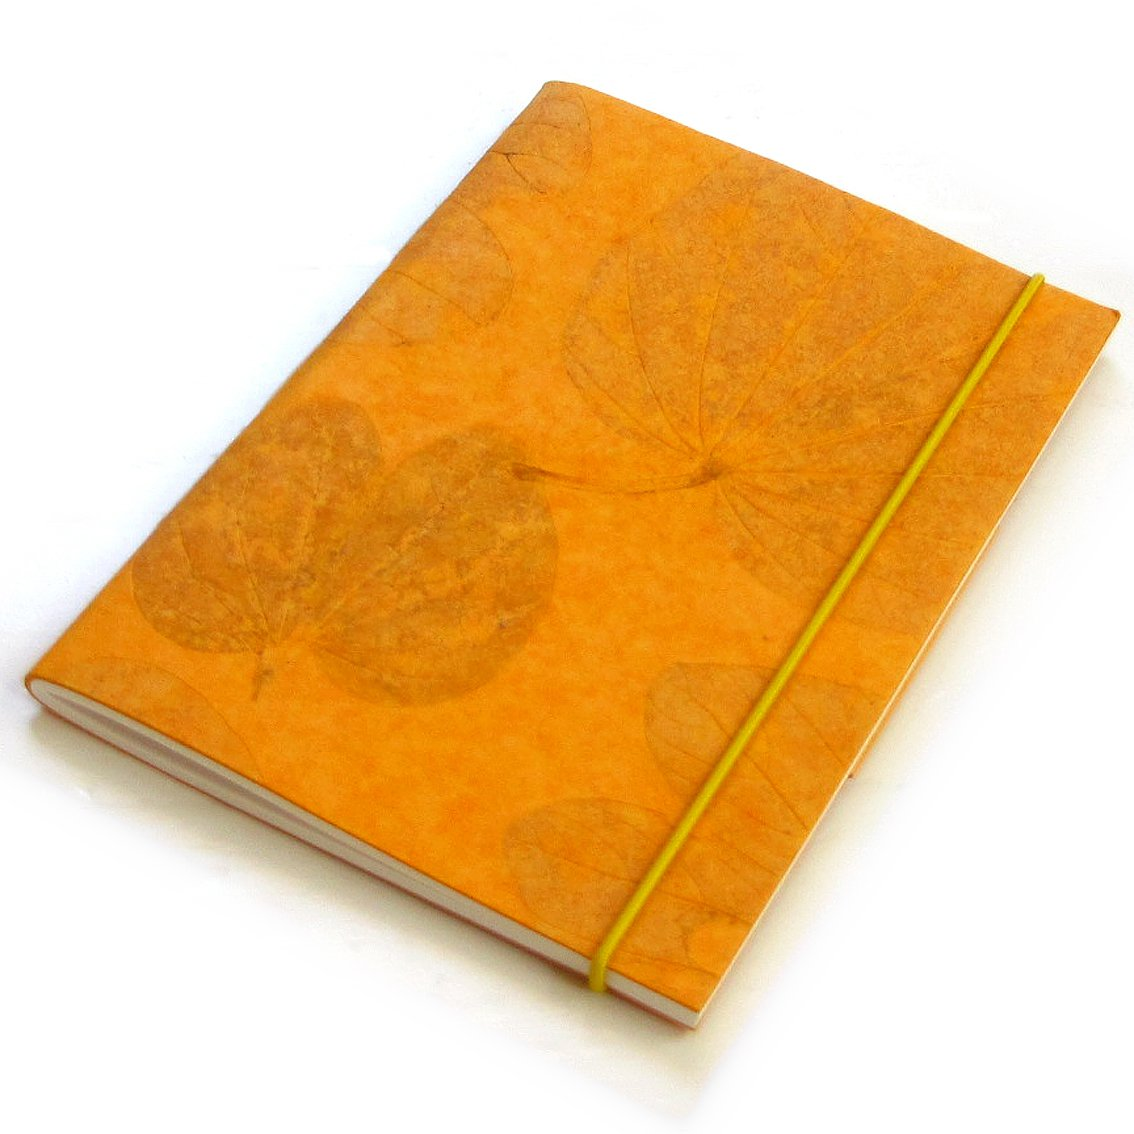 Light orange handmade recycled heart leaf paper 5x7 40pp notebook sketching diary